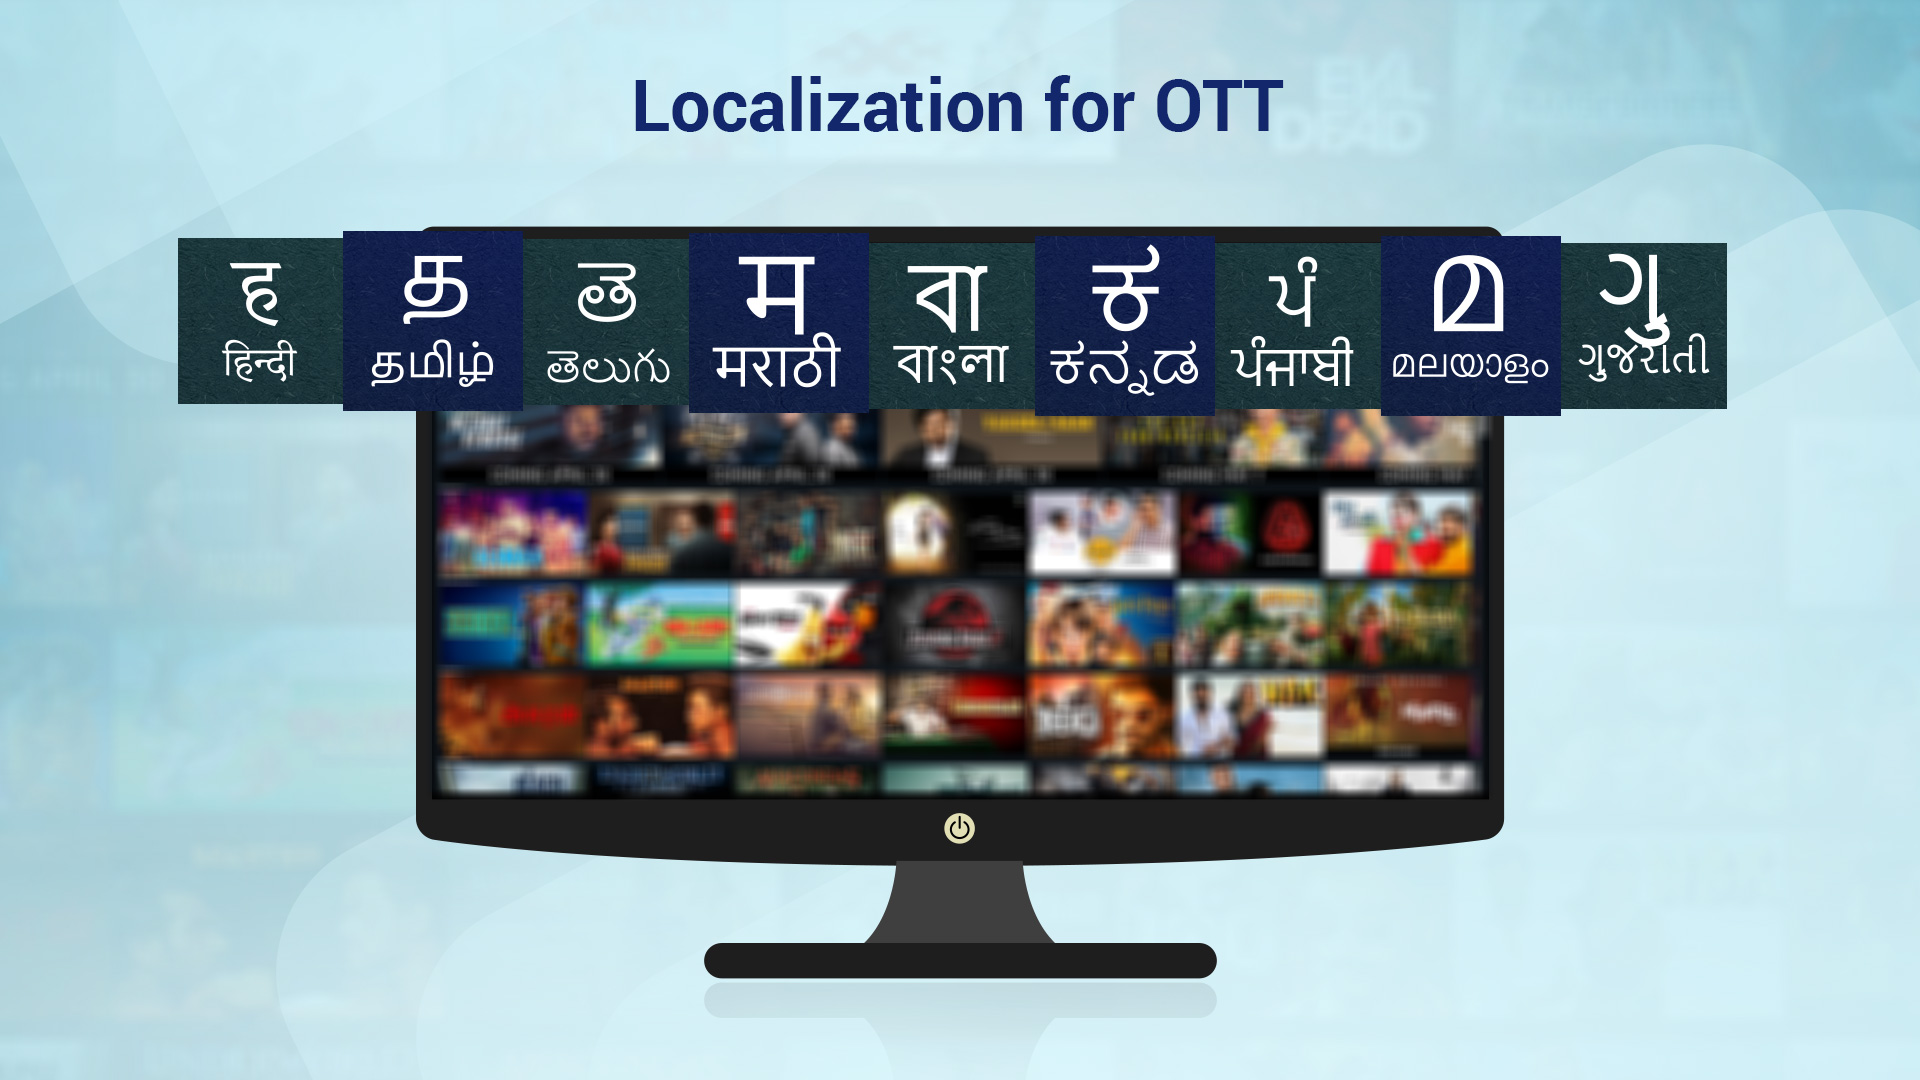 Meet Global and Local needs for OTT through Localization!!